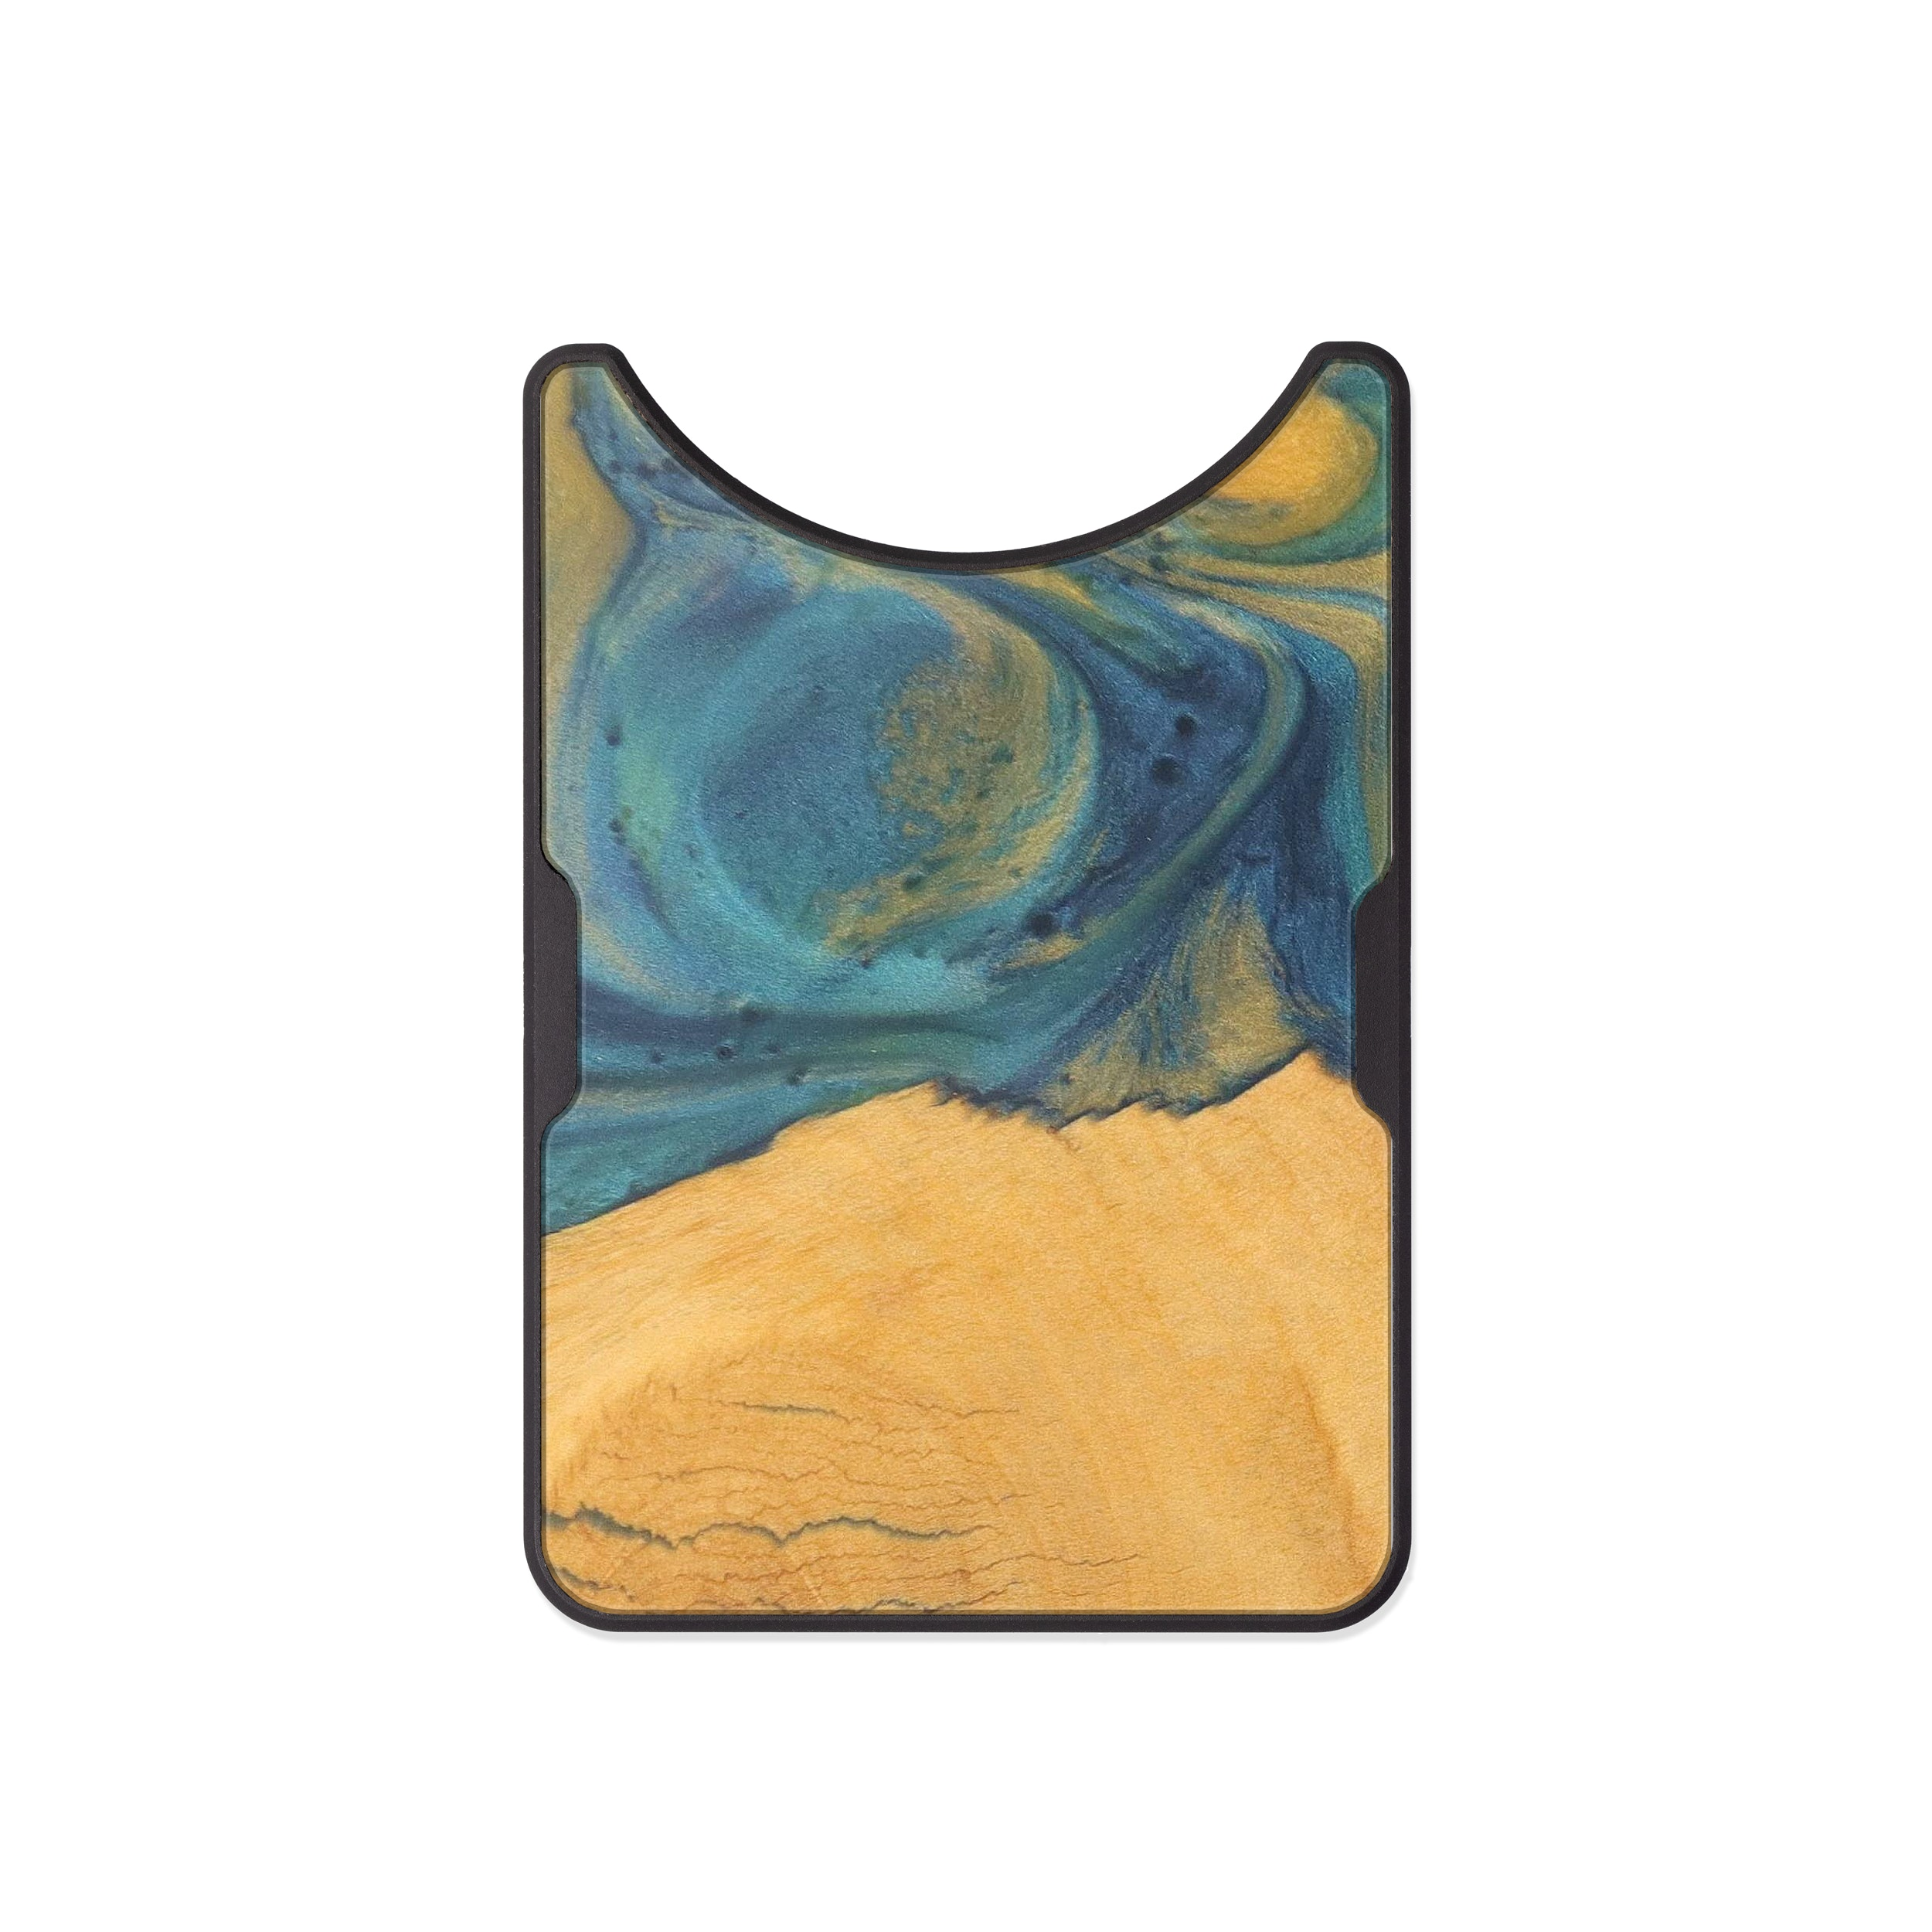 Alloy Wood+Resin Wallet - Frederica (Teal & Gold, 473184)